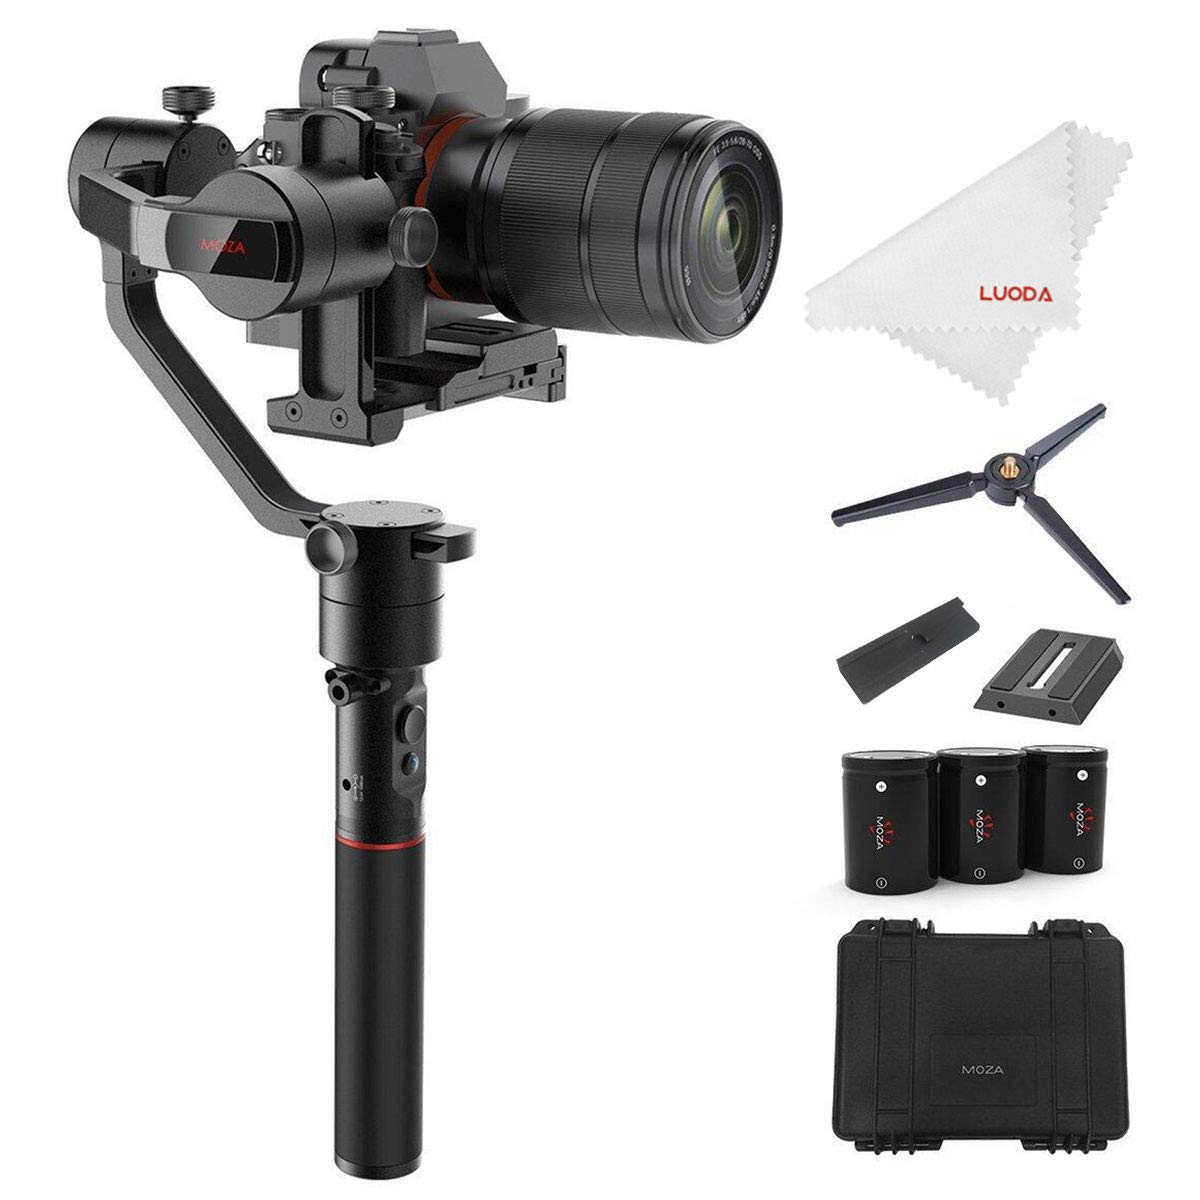 MOZA AirCross 3-Axis Gimbal Stabilizer for Mirrorless Camera up to 3.9 Lb, Auto-Tuning, Time-lapse Shooting, 12Hrs Run-time i.e. Sony A7SII, Pana GH3/4/5 by MOZA